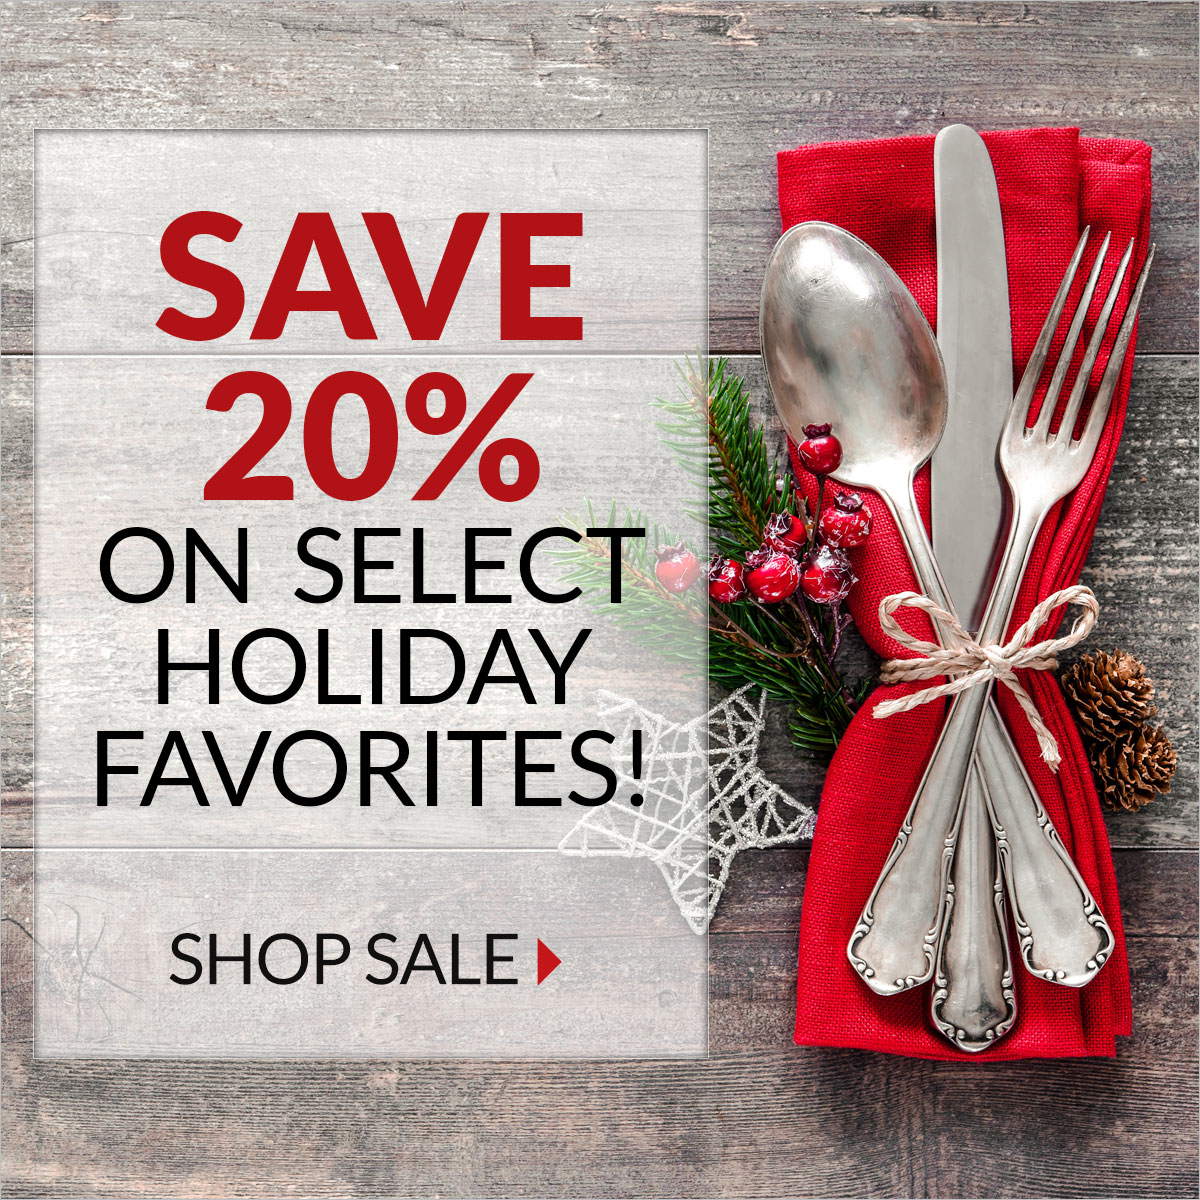 Holiday Favorites 20% Off - Smithfield Marketplace